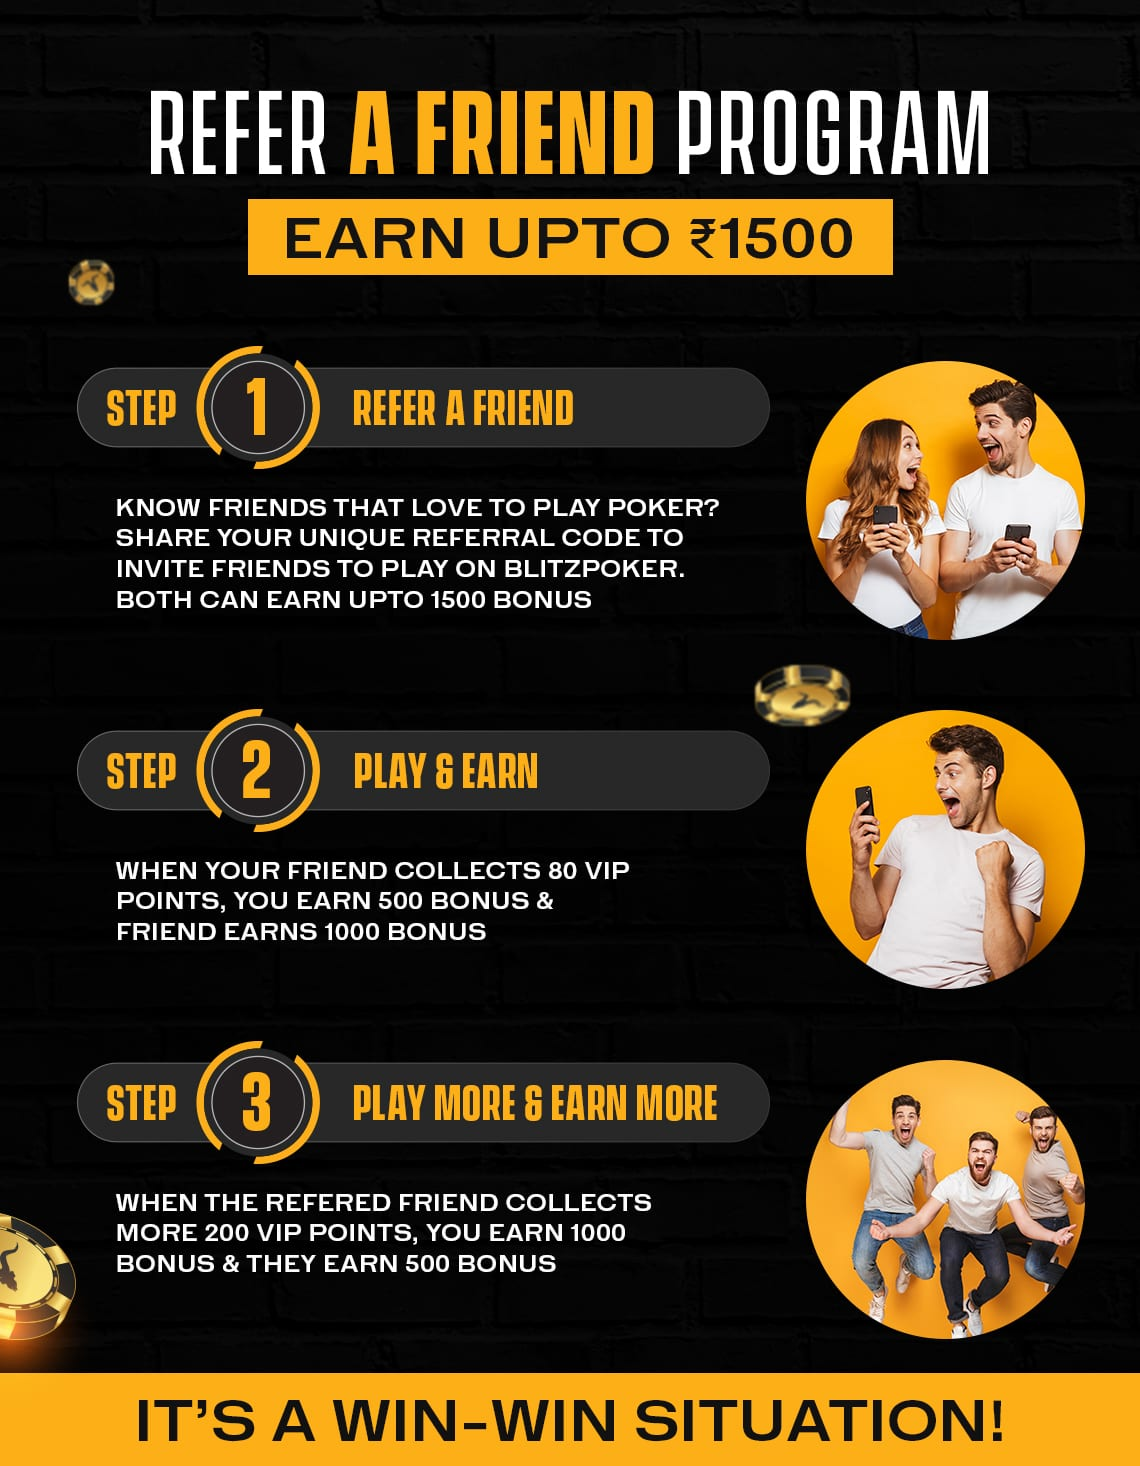 Refer A Friend Program | BLITZPOKER